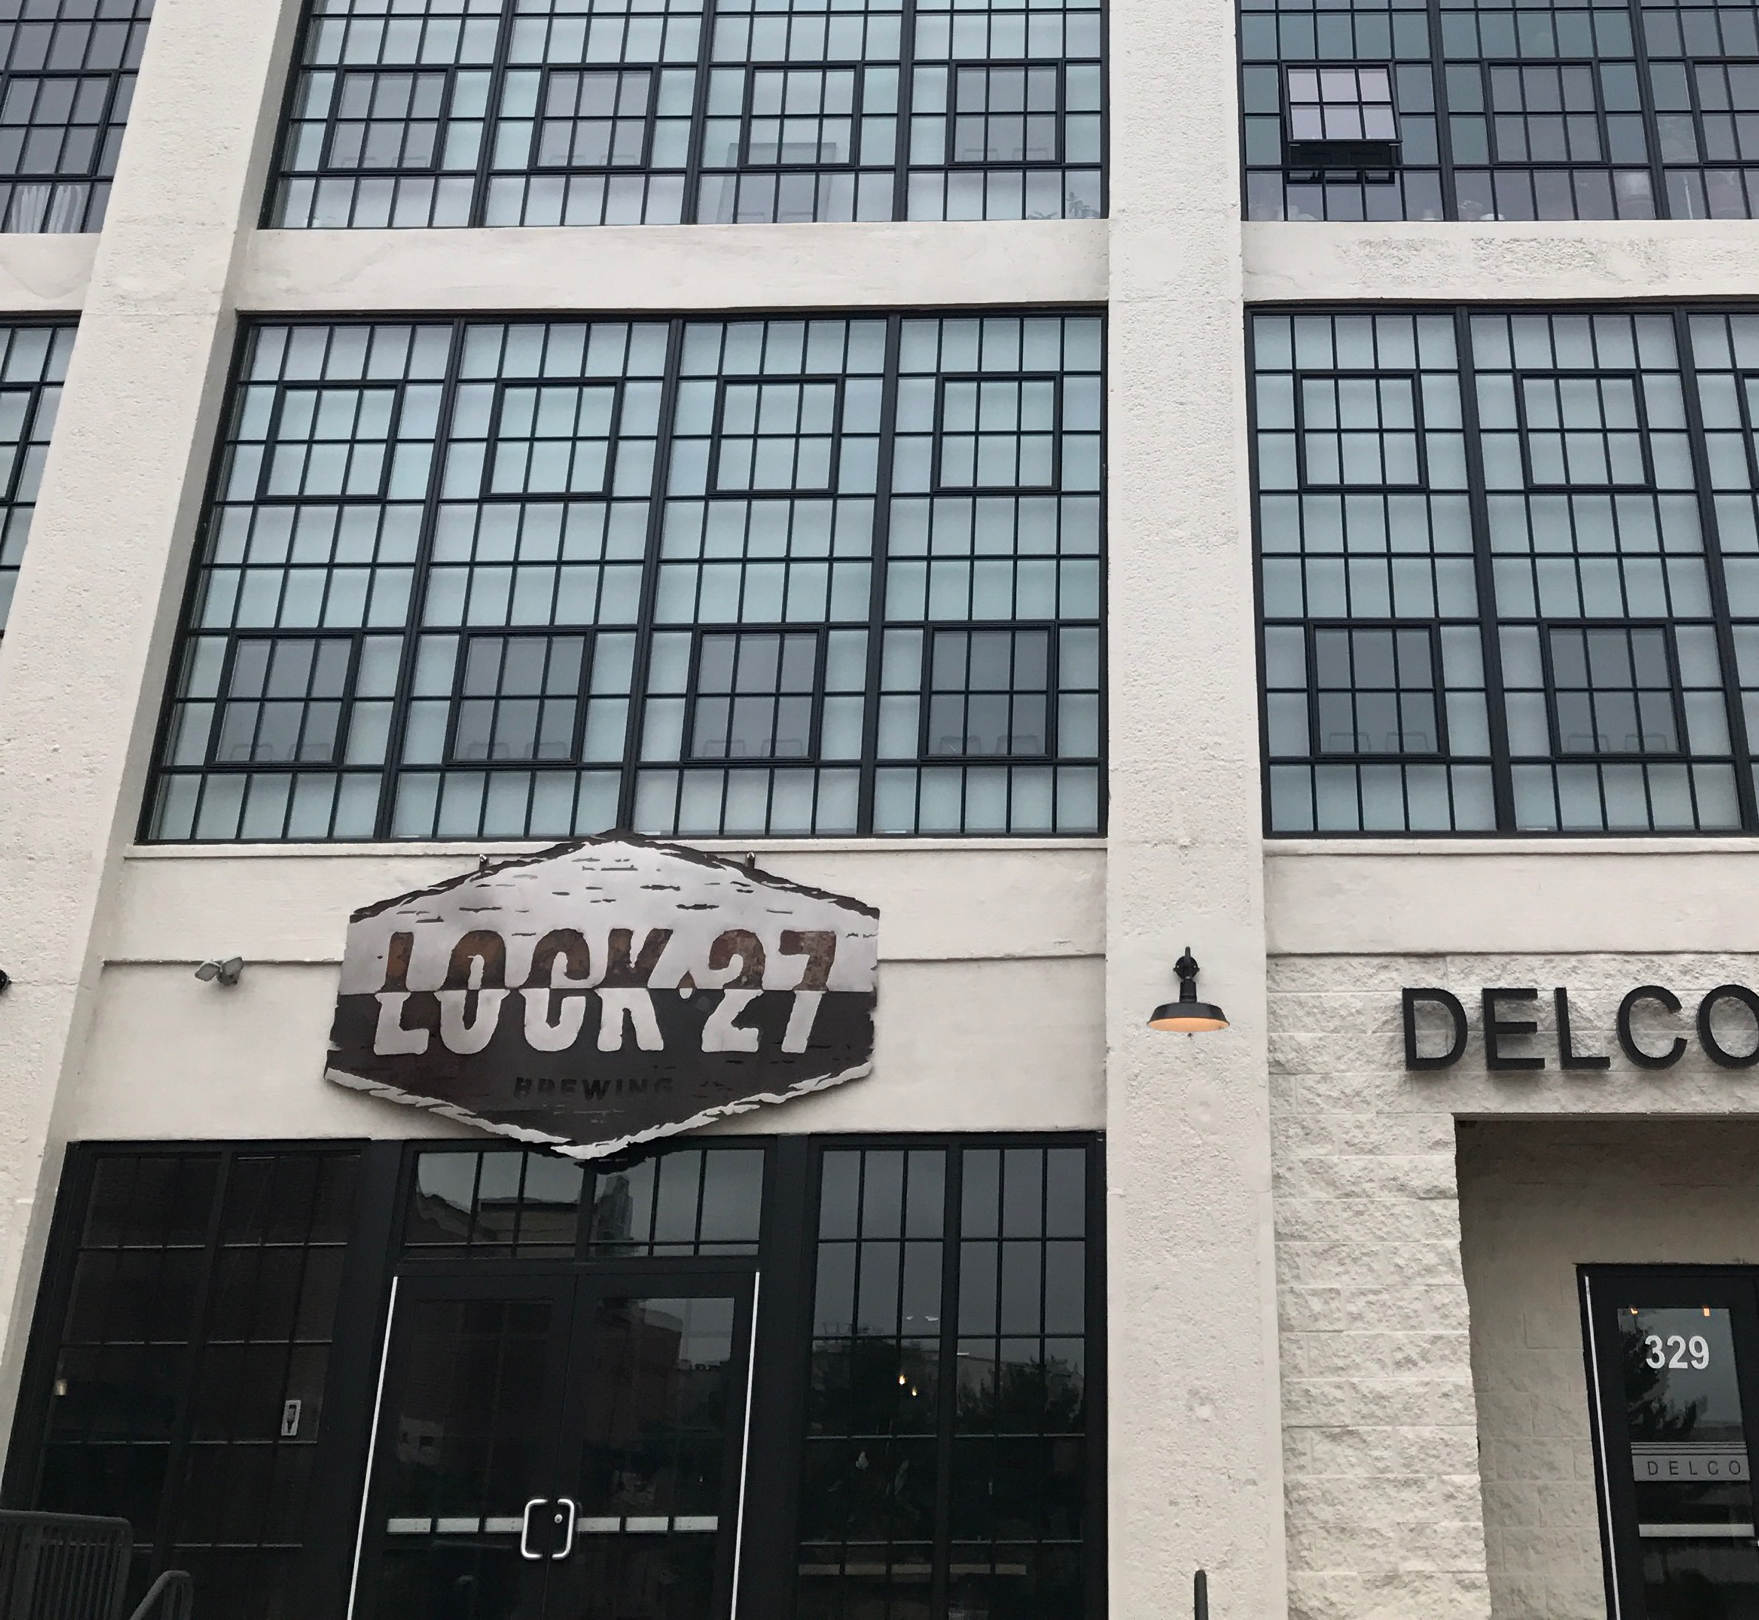 Find It In Downtown Dayton Partnership Locklock Twisst 360ml Lls121 Lock 27s Gastrotap Room Features Its Own Artisan Ales And Lagers Along With Beers From Other Breweries Plus Wines Cocktails Deliciously